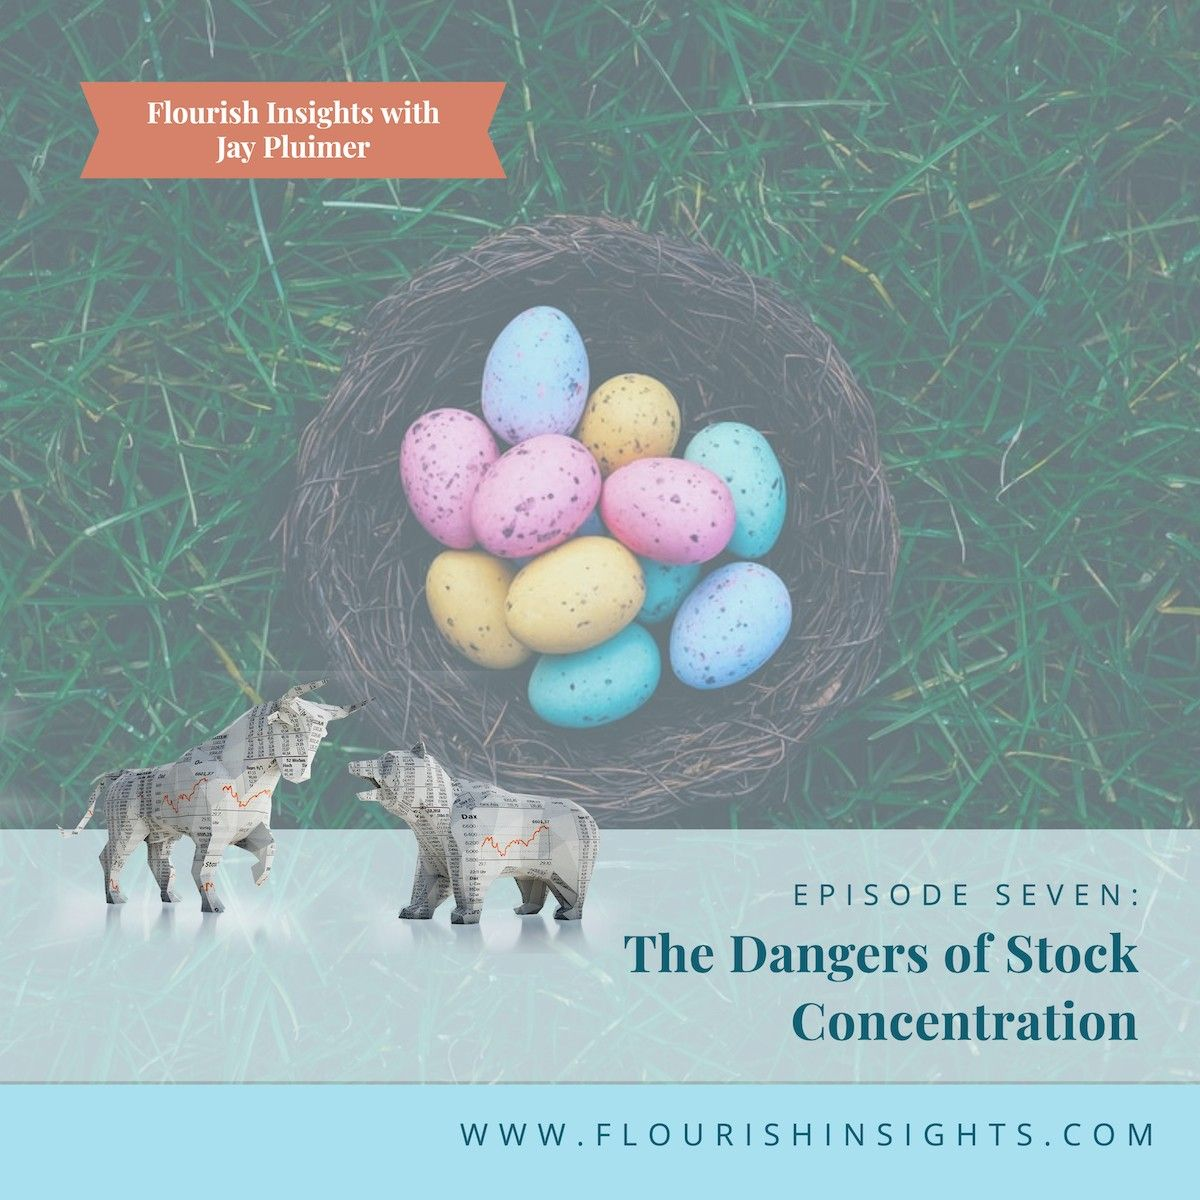 The Dangers of Stock Concentration